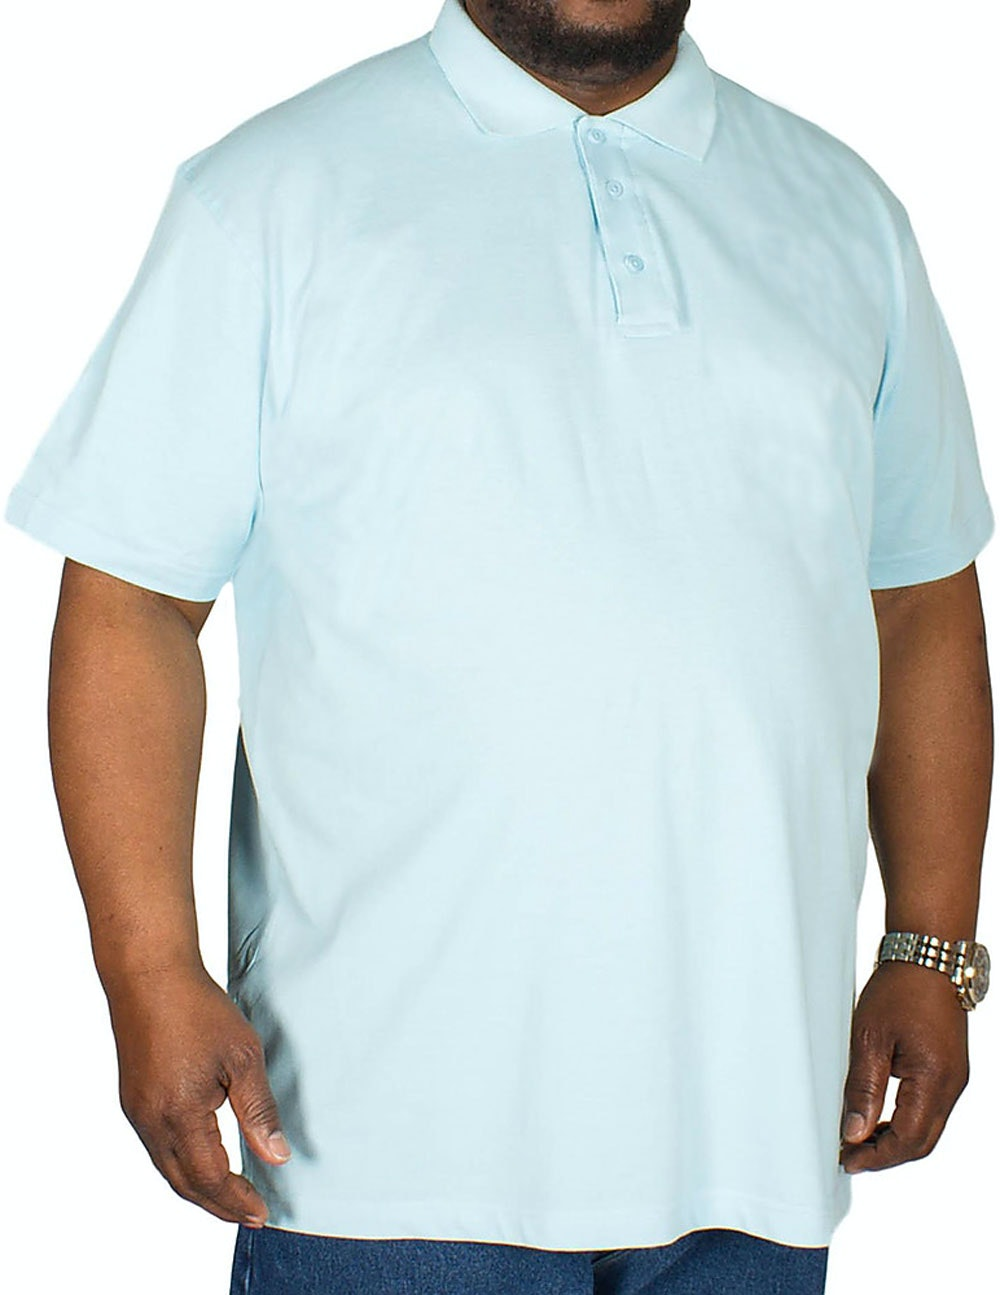 Bigdude Plain Polo Shirt Light Blue Tall